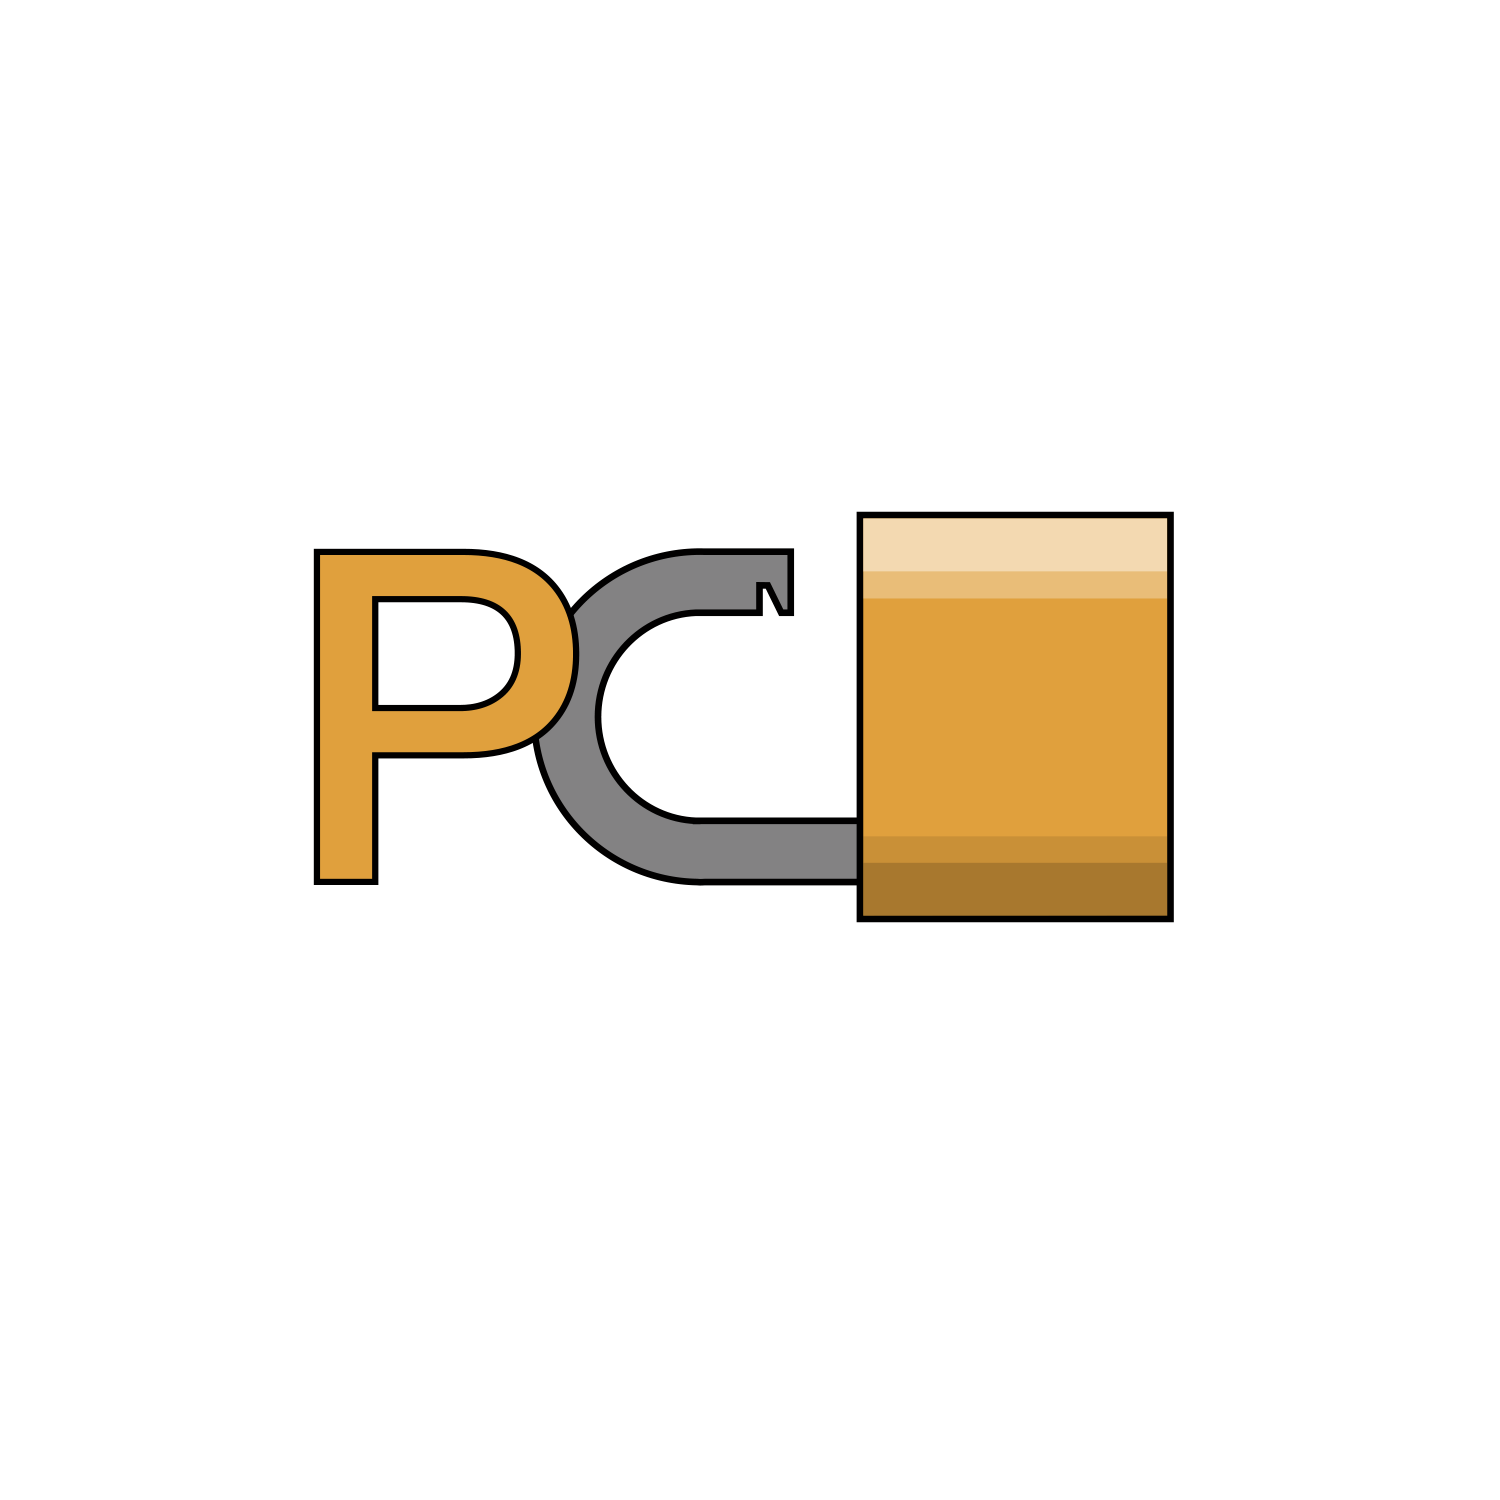 PC Confidential.png